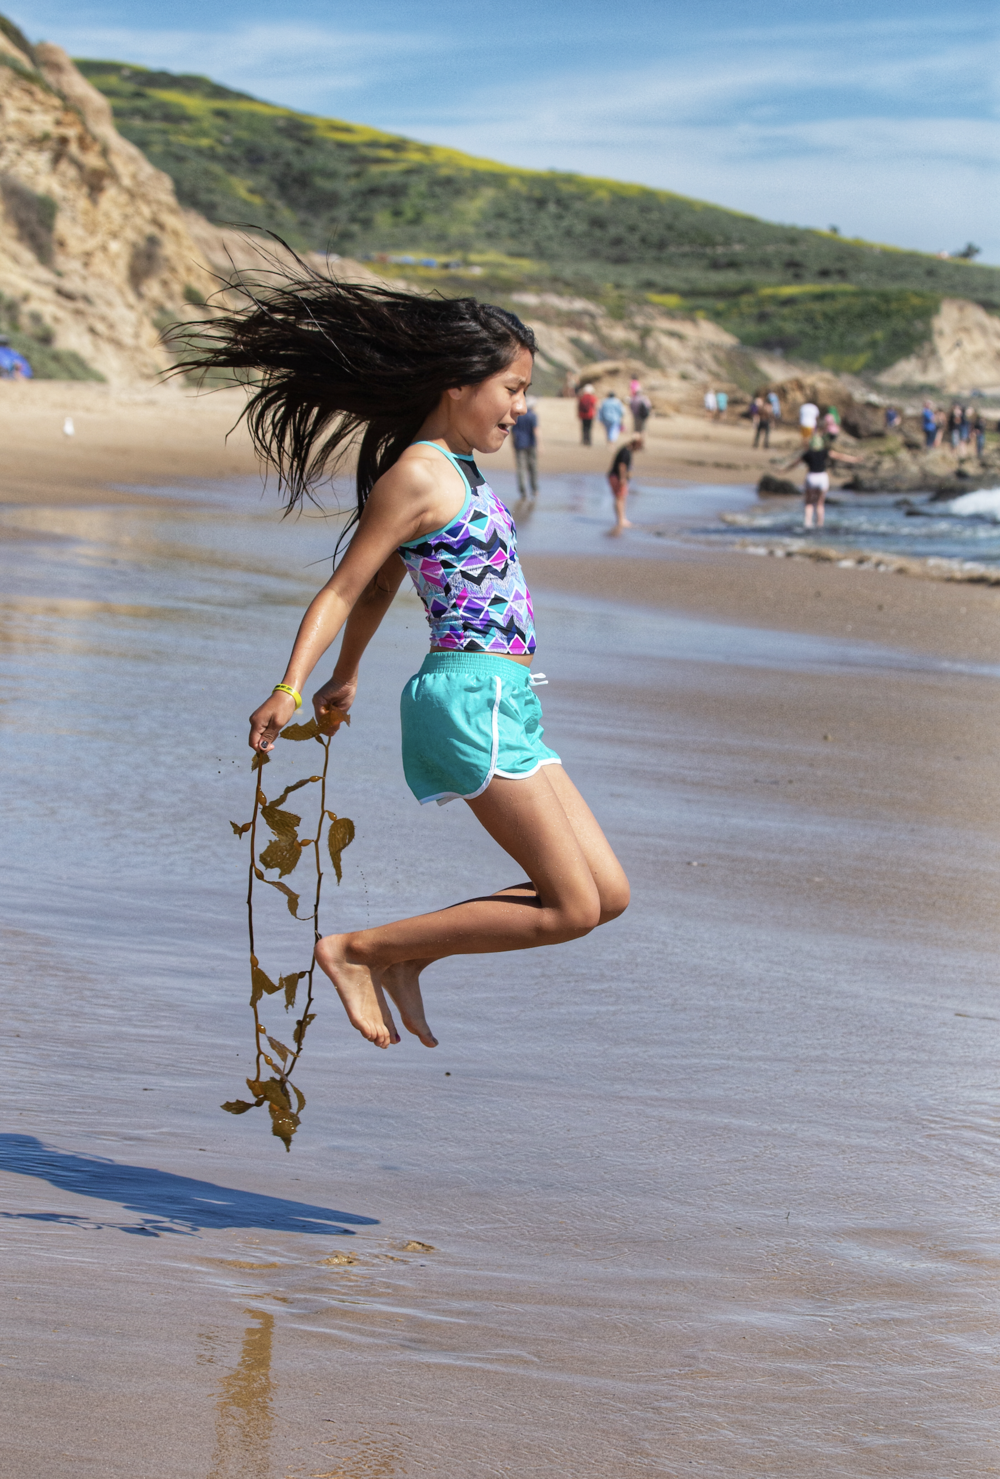 Memphis jump ropes with seaweed at Laguna Beach, CA. Photo taken by Anita Ojeda.